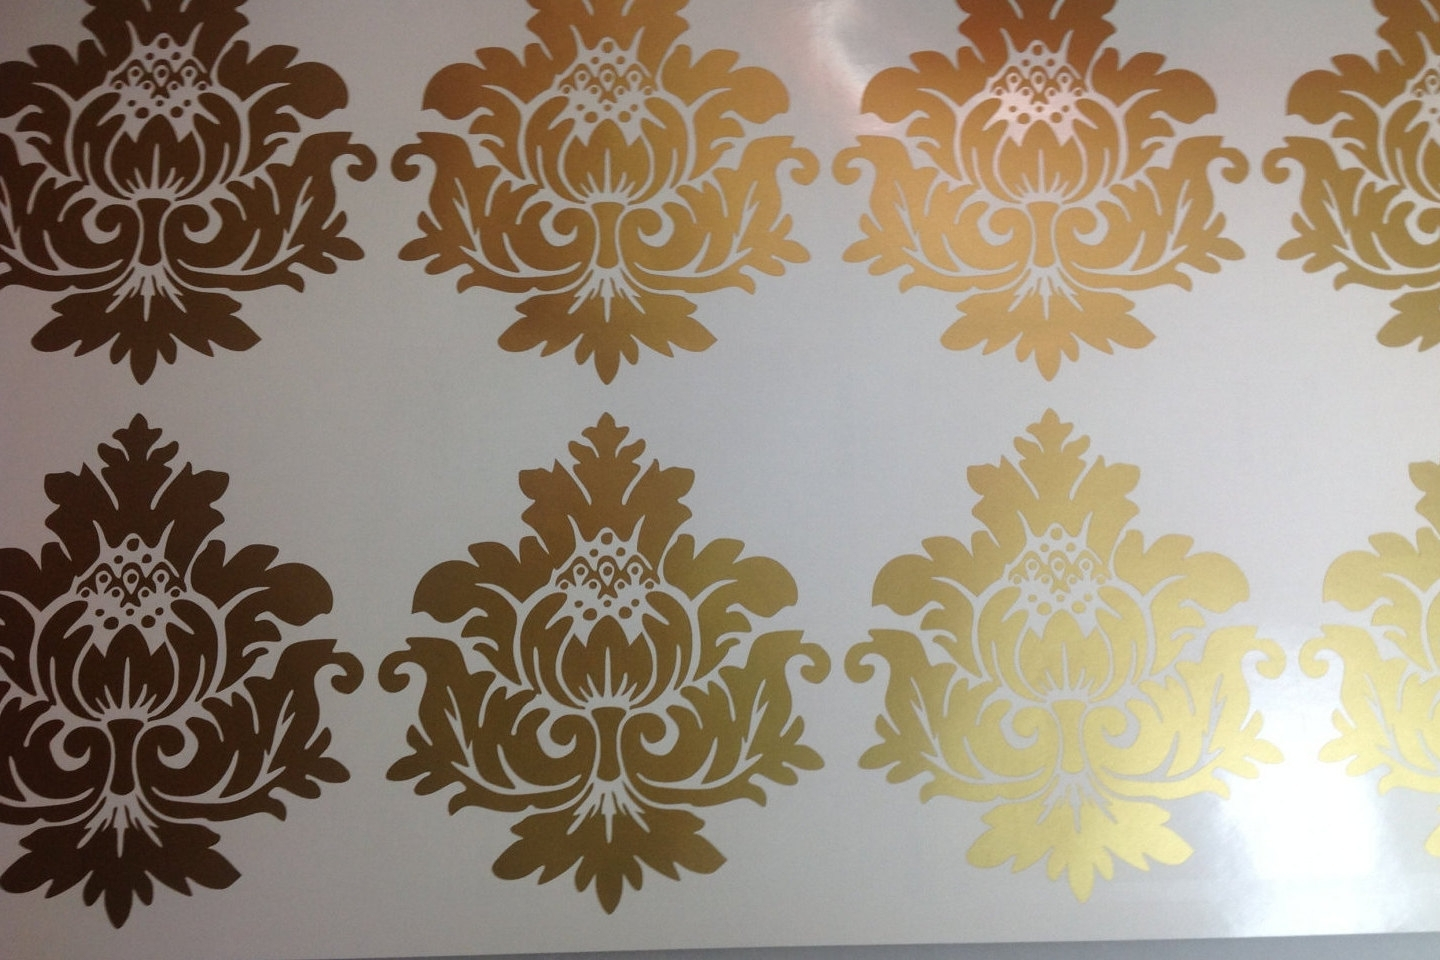 2018 Gold Vinyl Wall Fancy Gold Wall Decals – Wall Decoration Ideas Throughout Gold Wall Art (View 1 of 15)